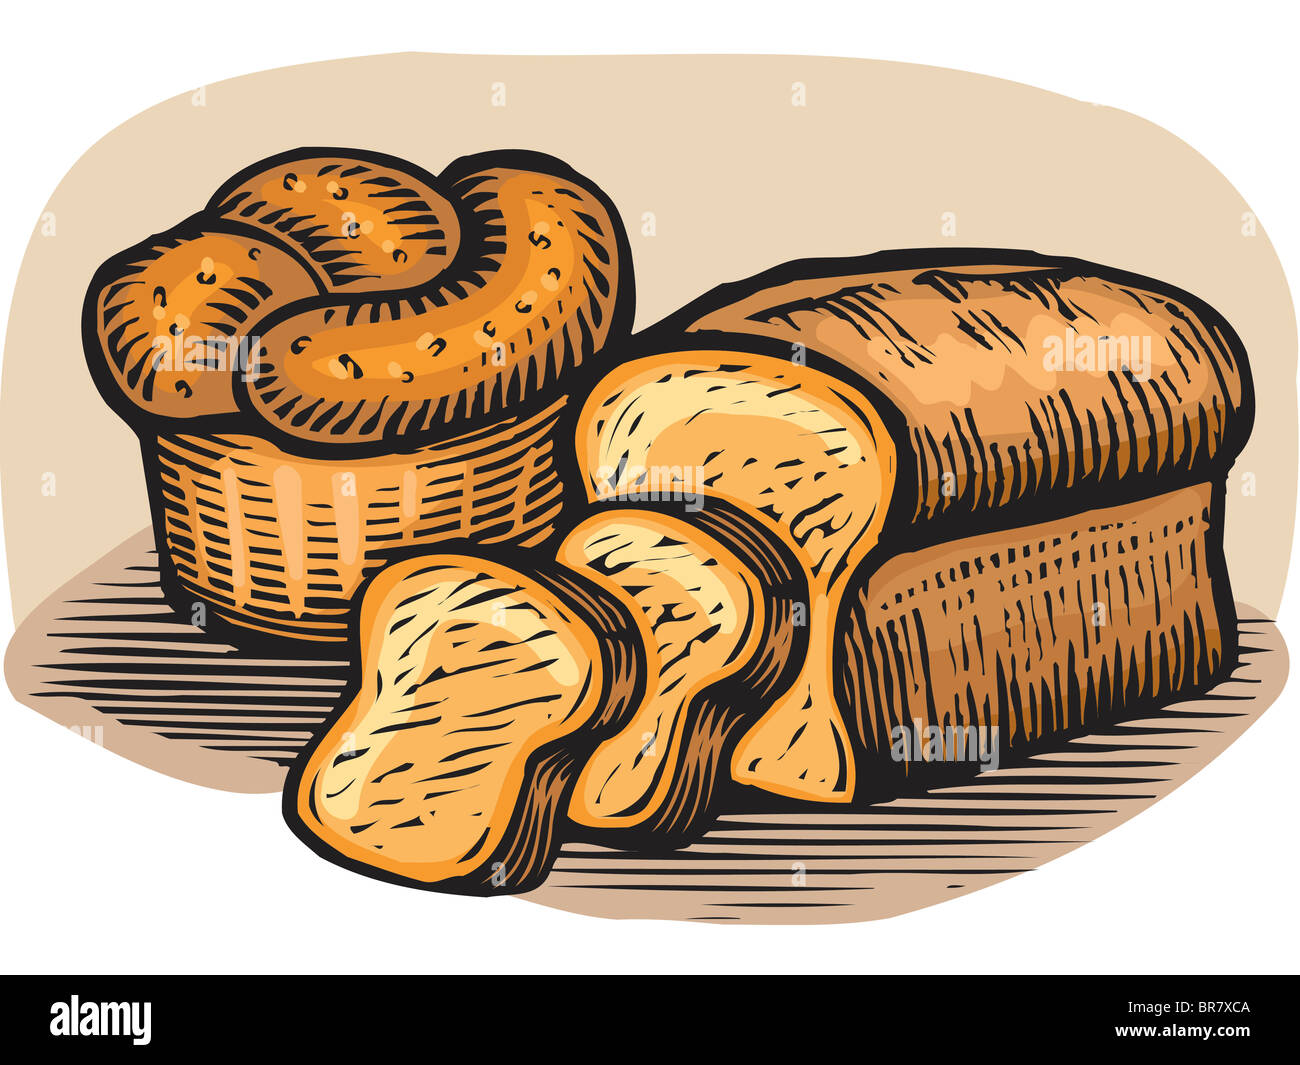 Uncategorized Loaf Of Bread Drawing a drawing of loaves bread stock photo royalty free image bread